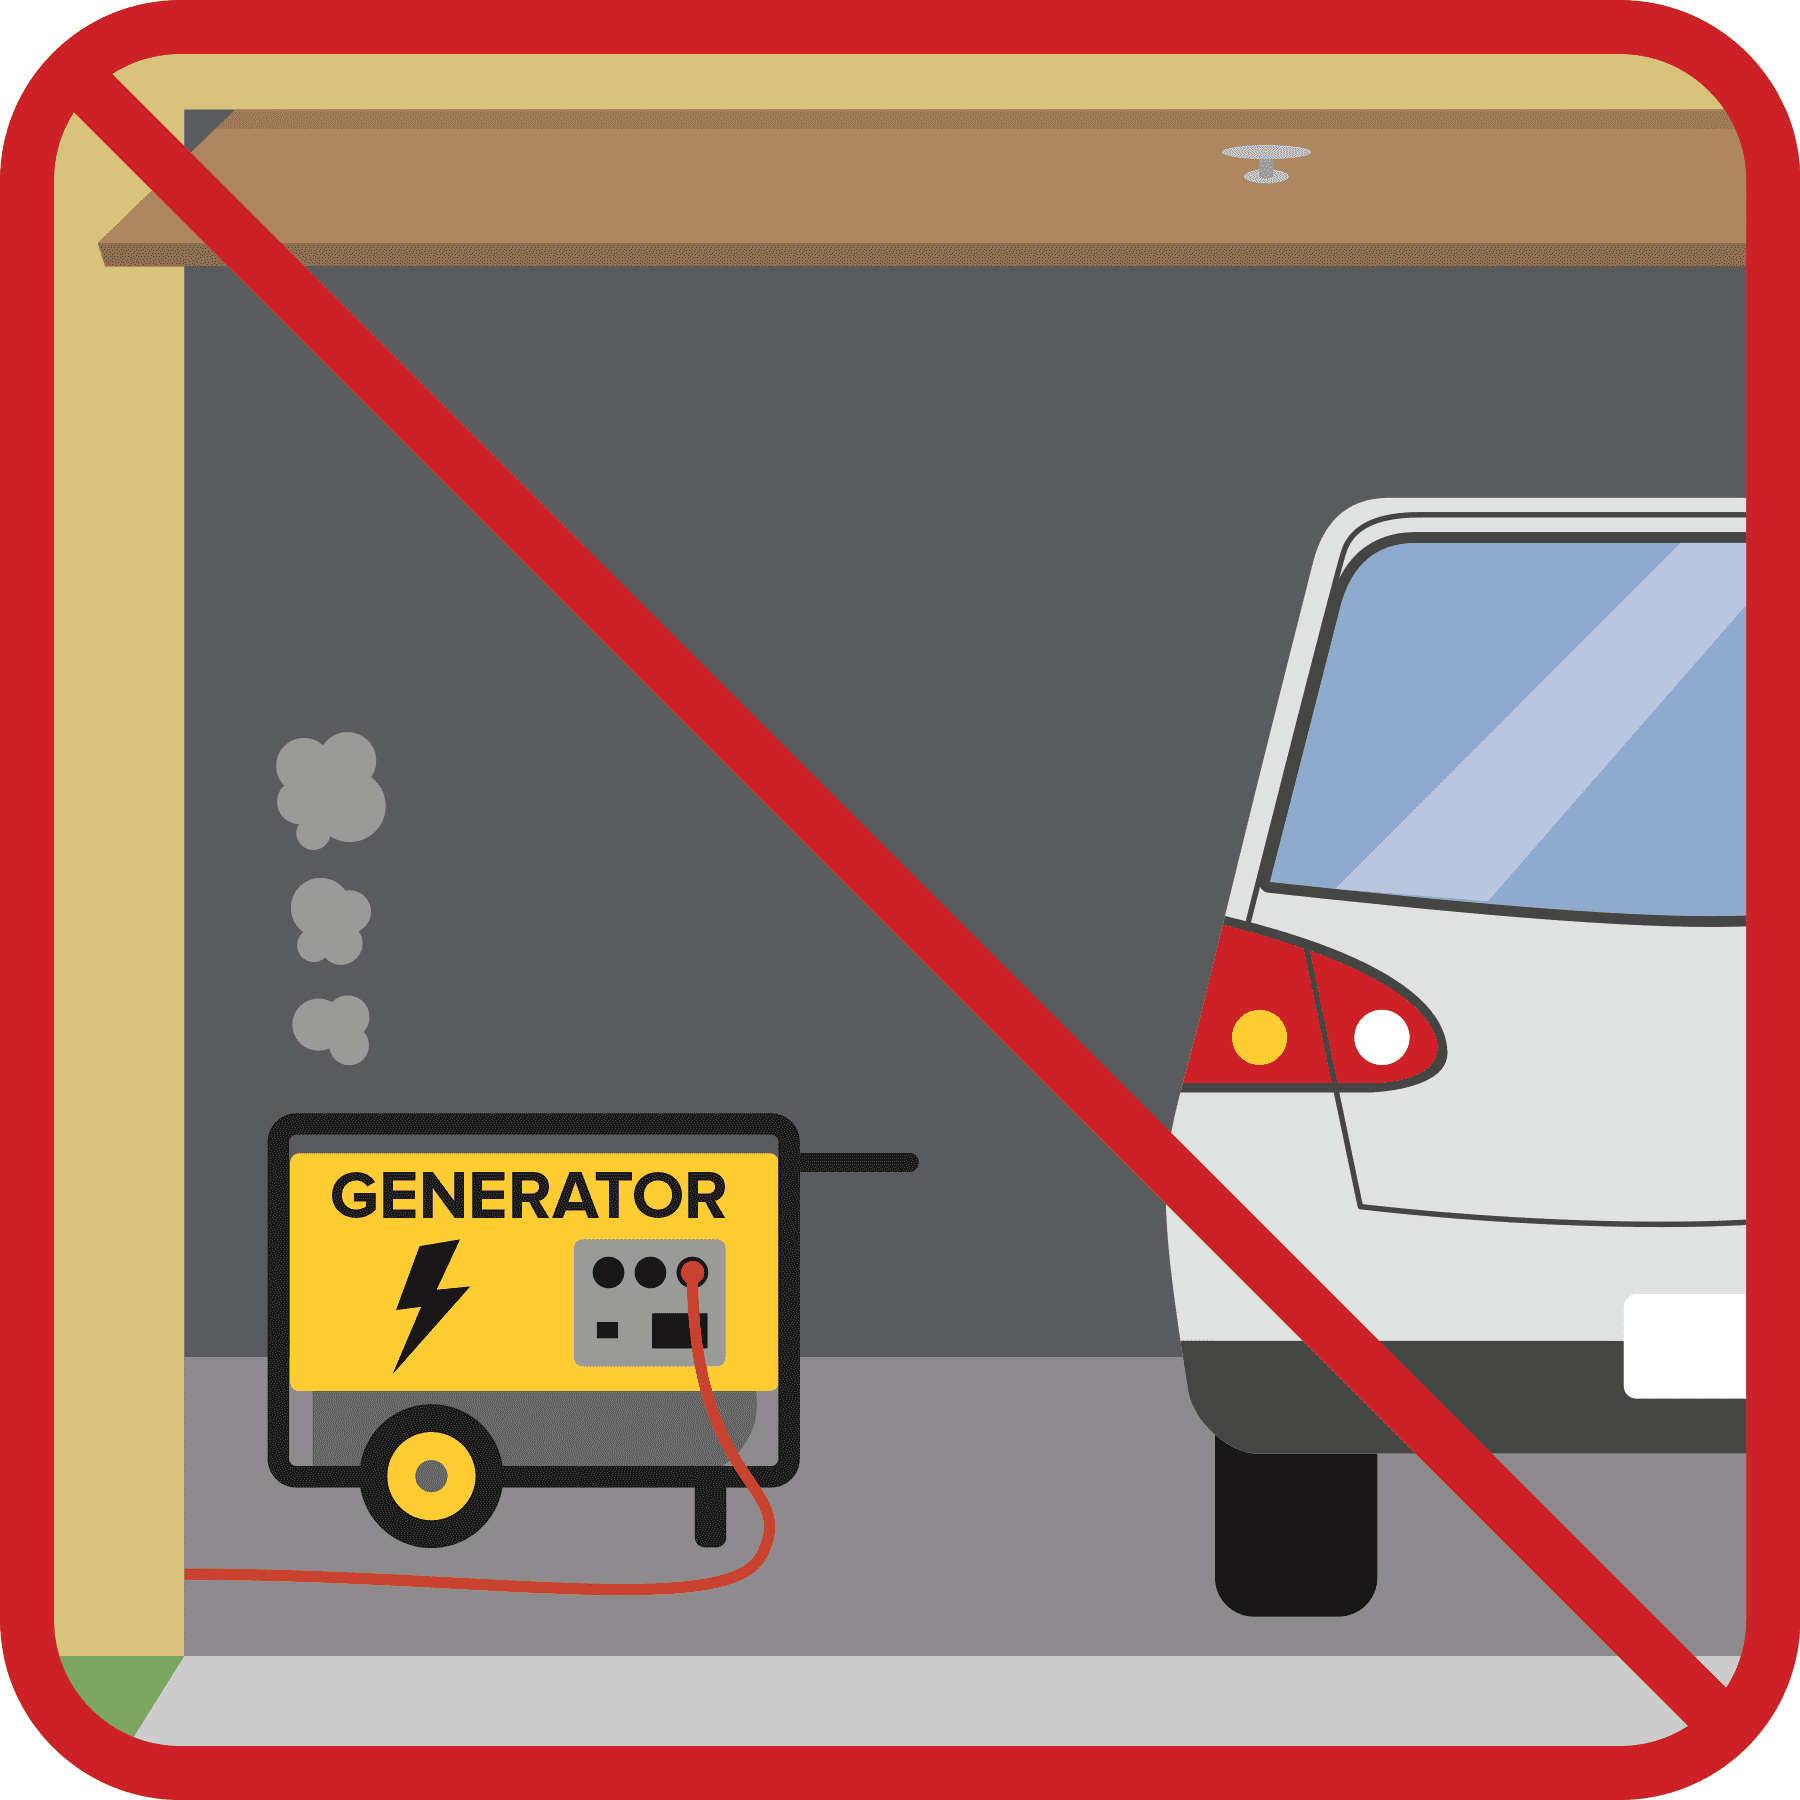 Generator inside a garage with the door open with a red no sign.